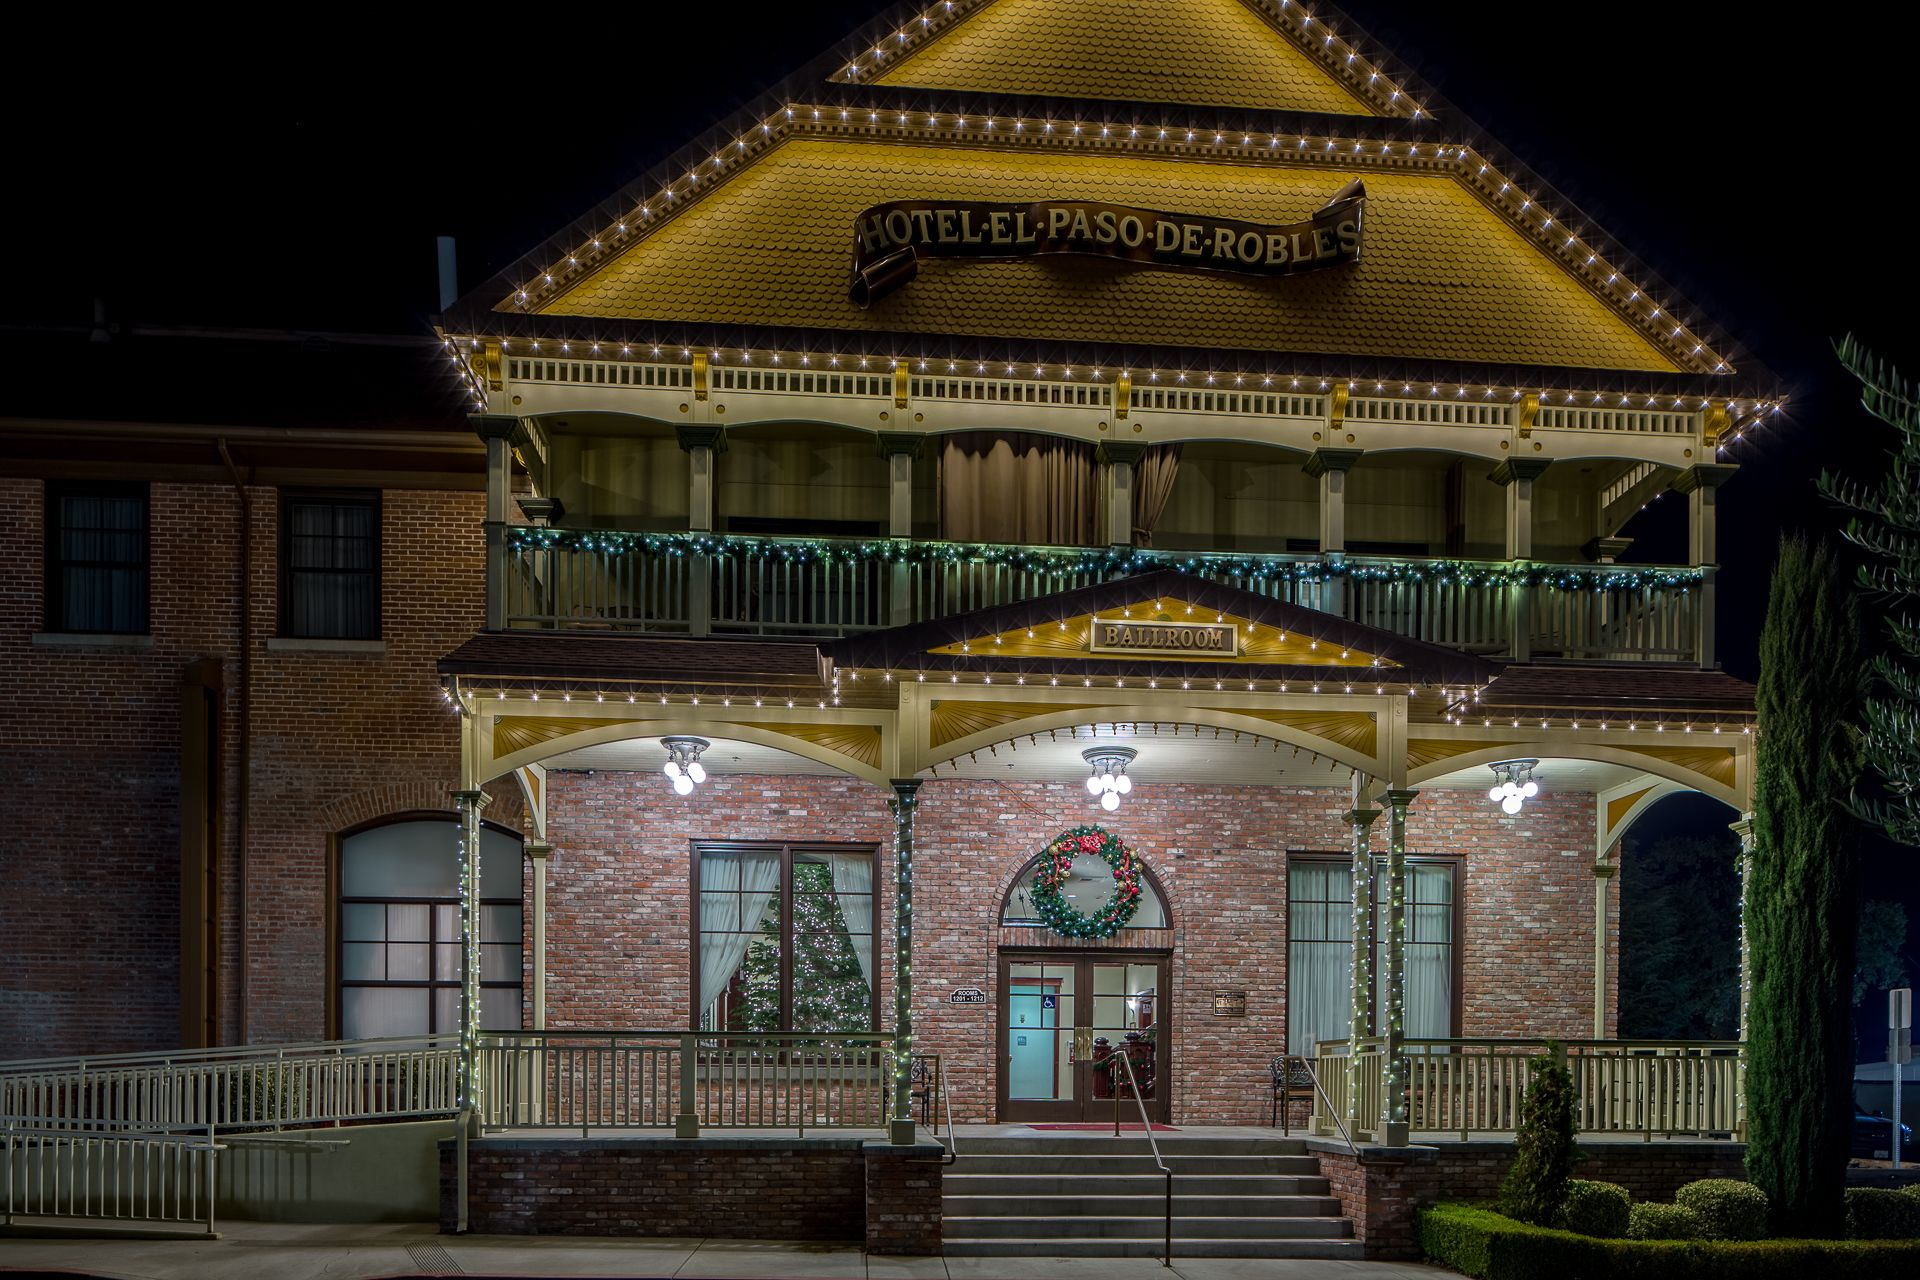 Deck the ballroom with boughs of holly paso robles inn